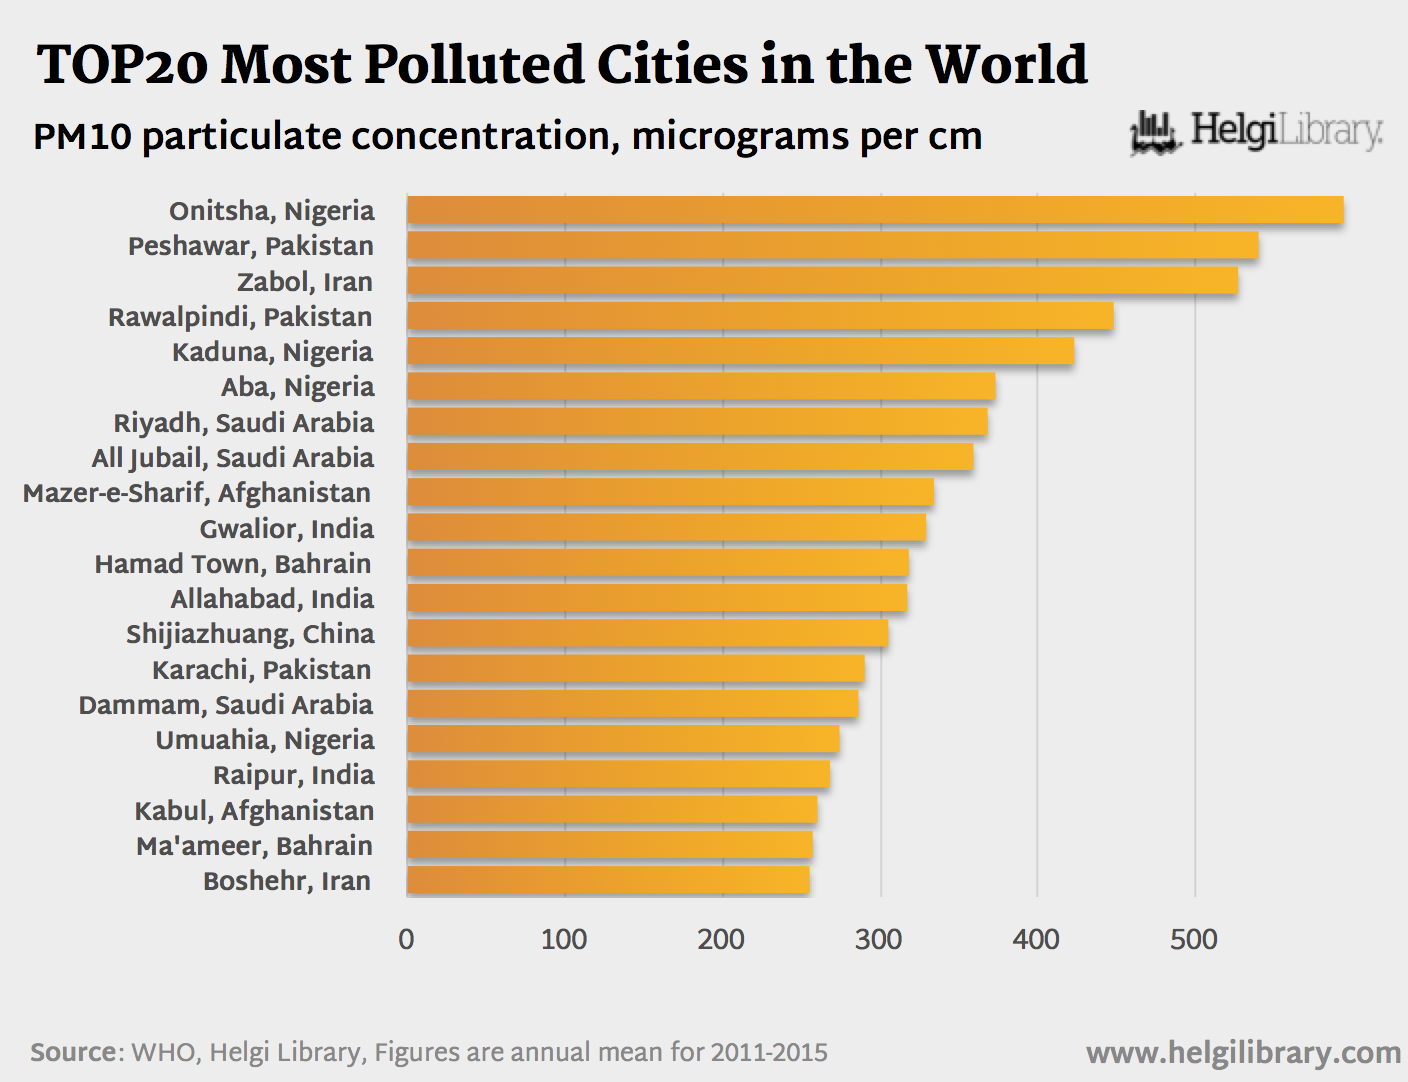 What Are the Most Polluted Cities in the World?